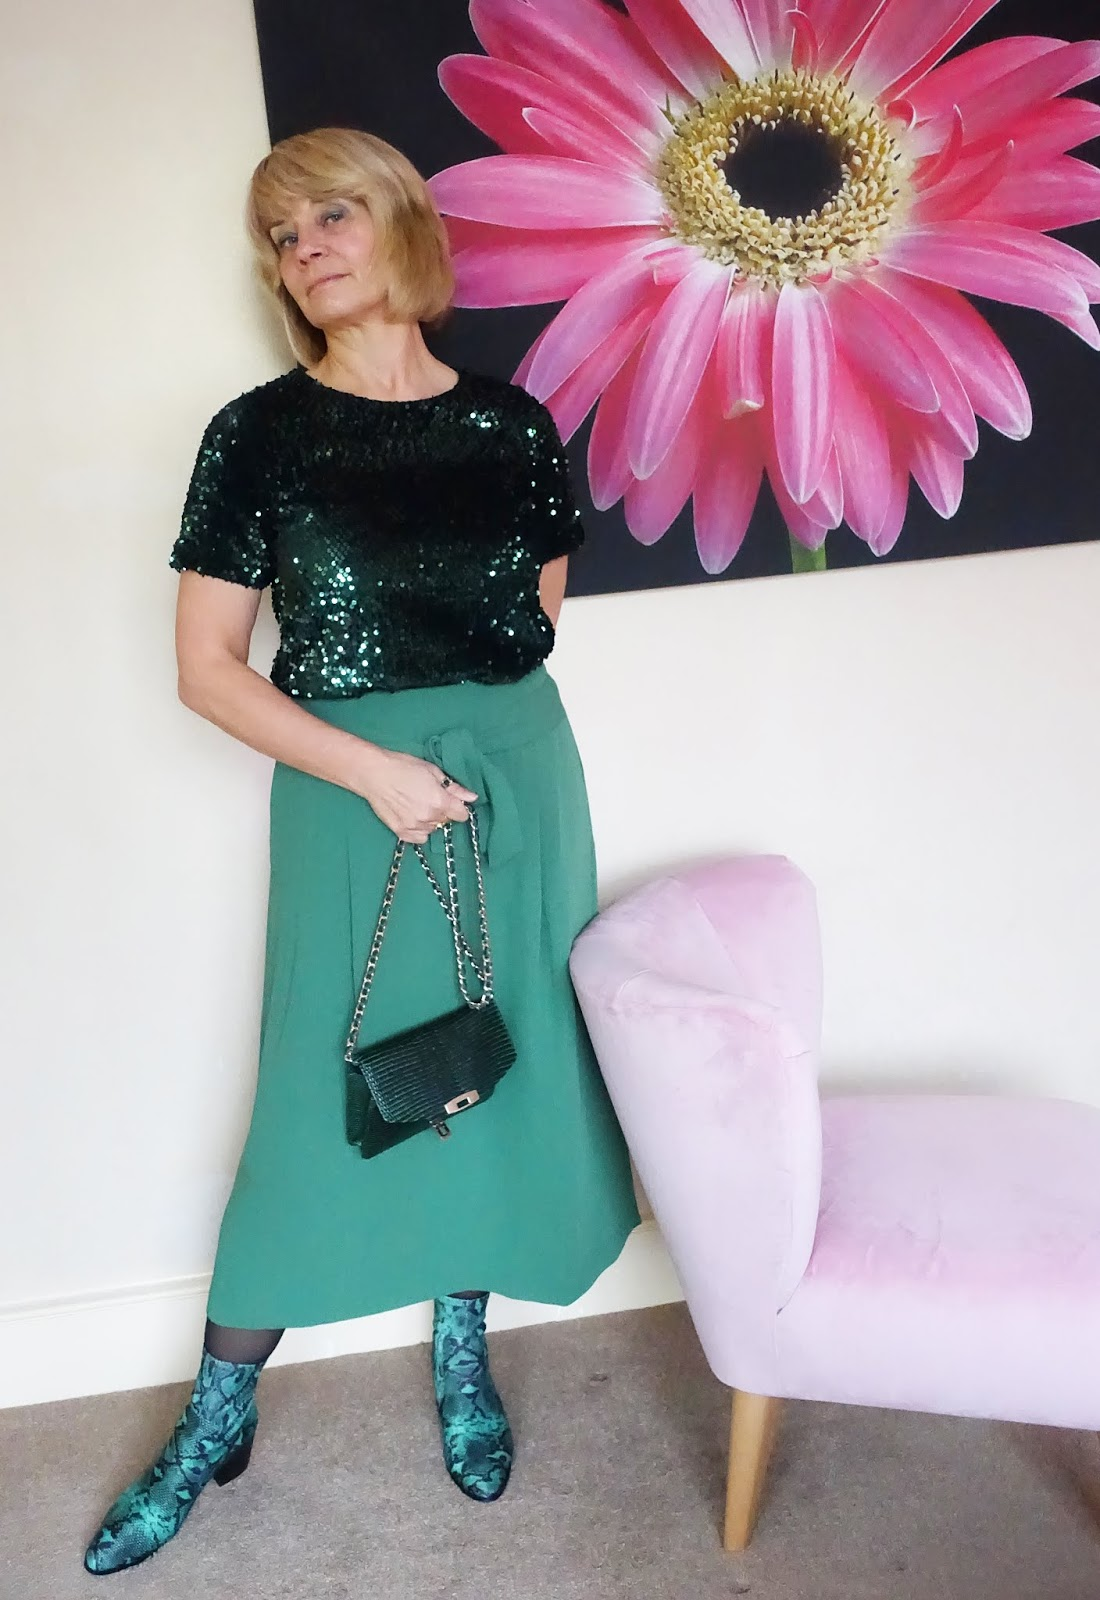 Over 50s style from Is This Mutton: green sequin top worn with green midi skirt from Boden and green snakeskin ankle boots